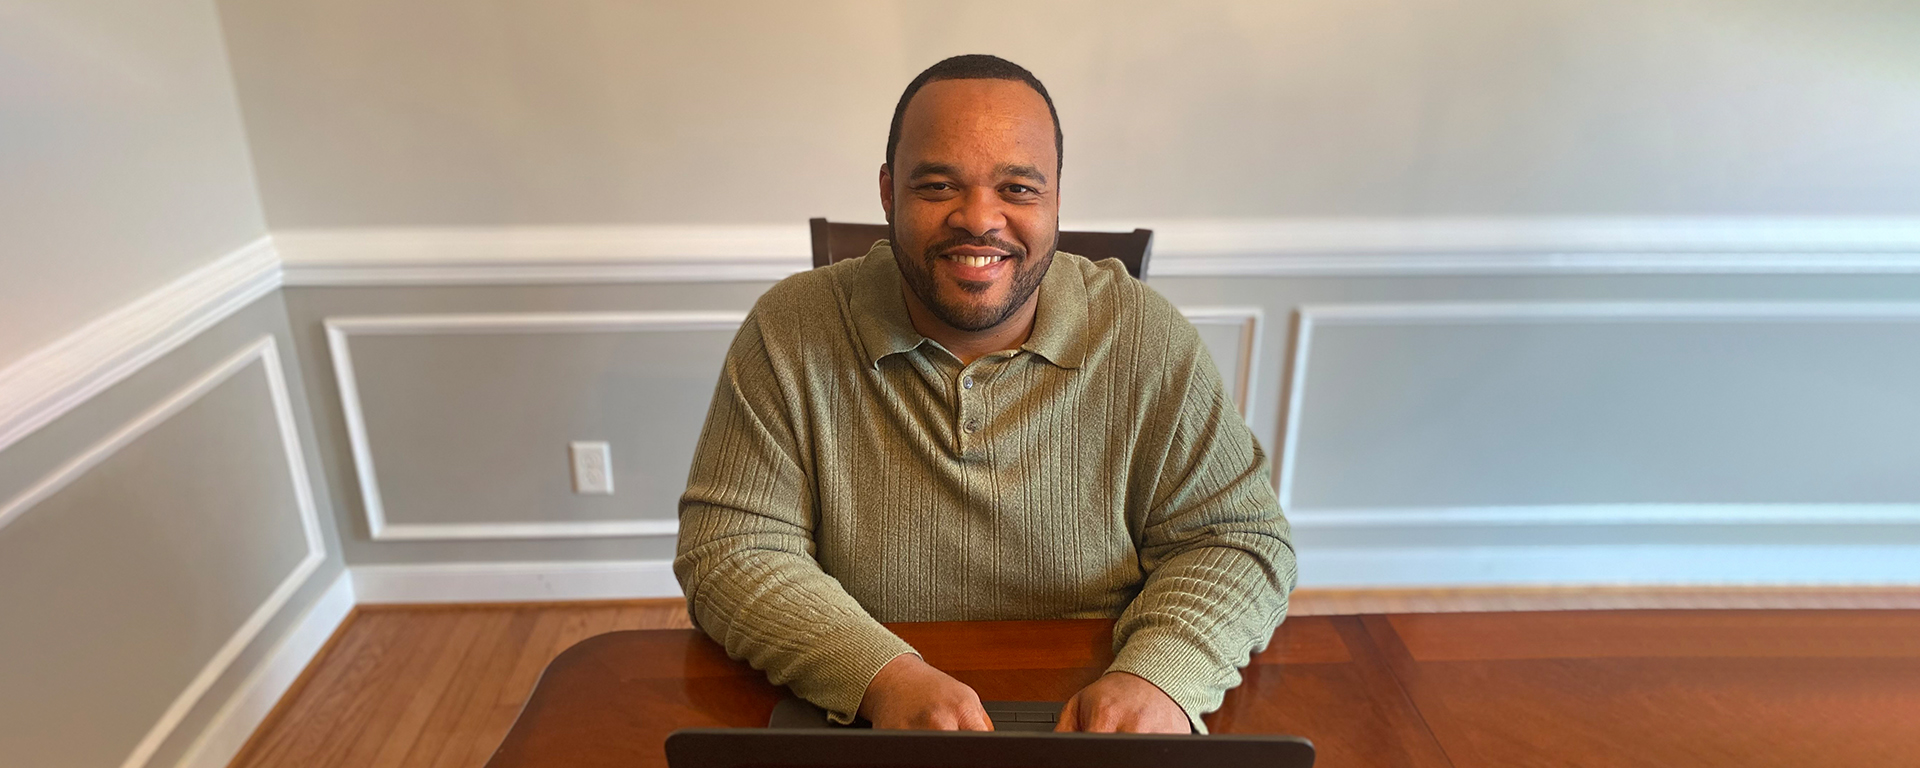 Tyrell, Capital One associate, sits at his home desk and talks about finding his passion at Capital One